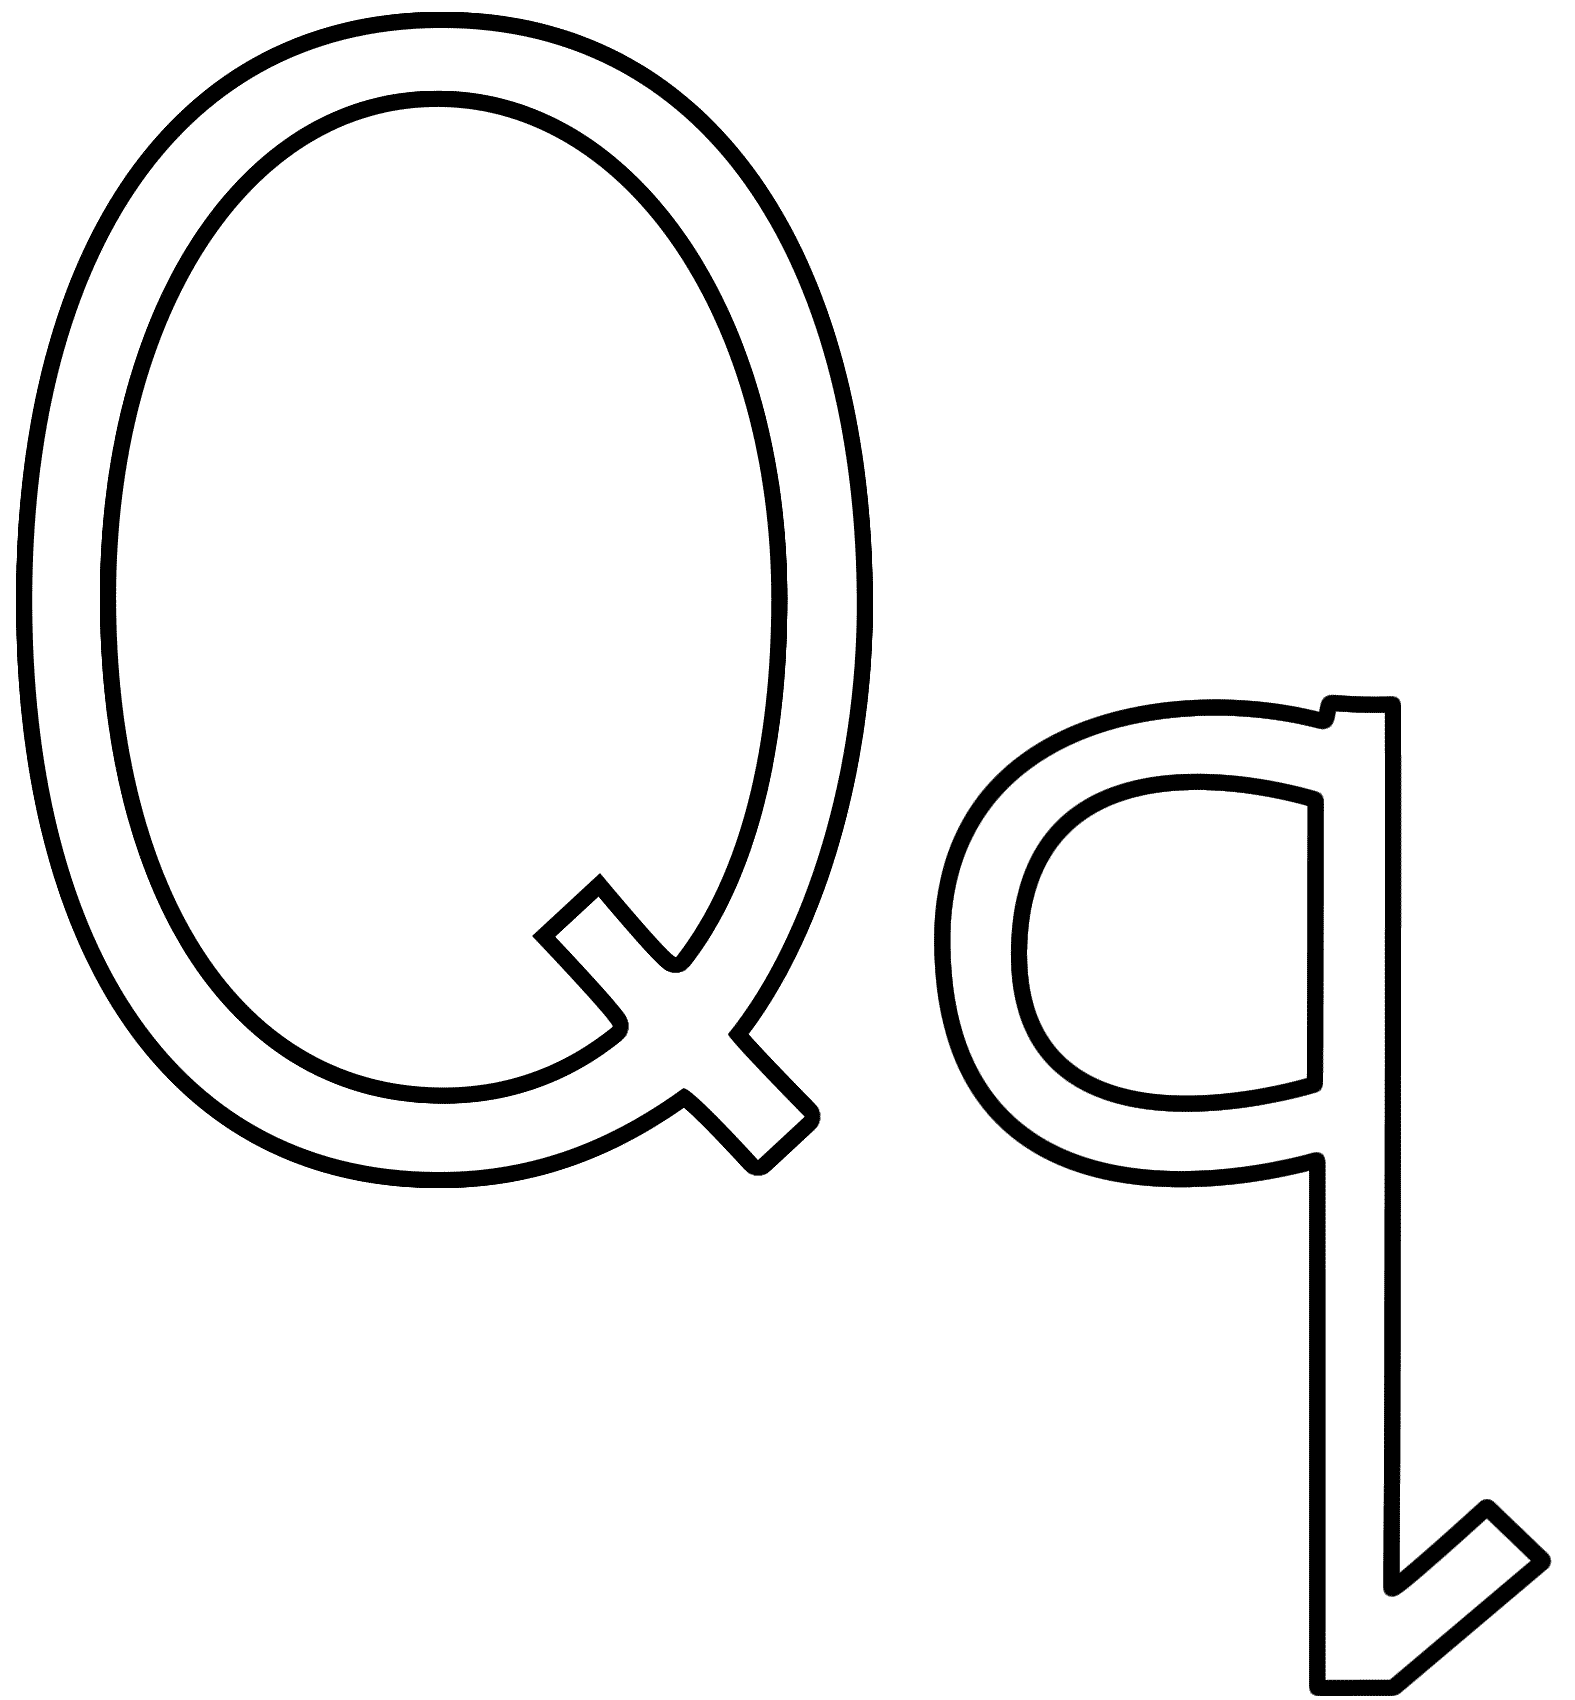 Coloring Pages Letter Q